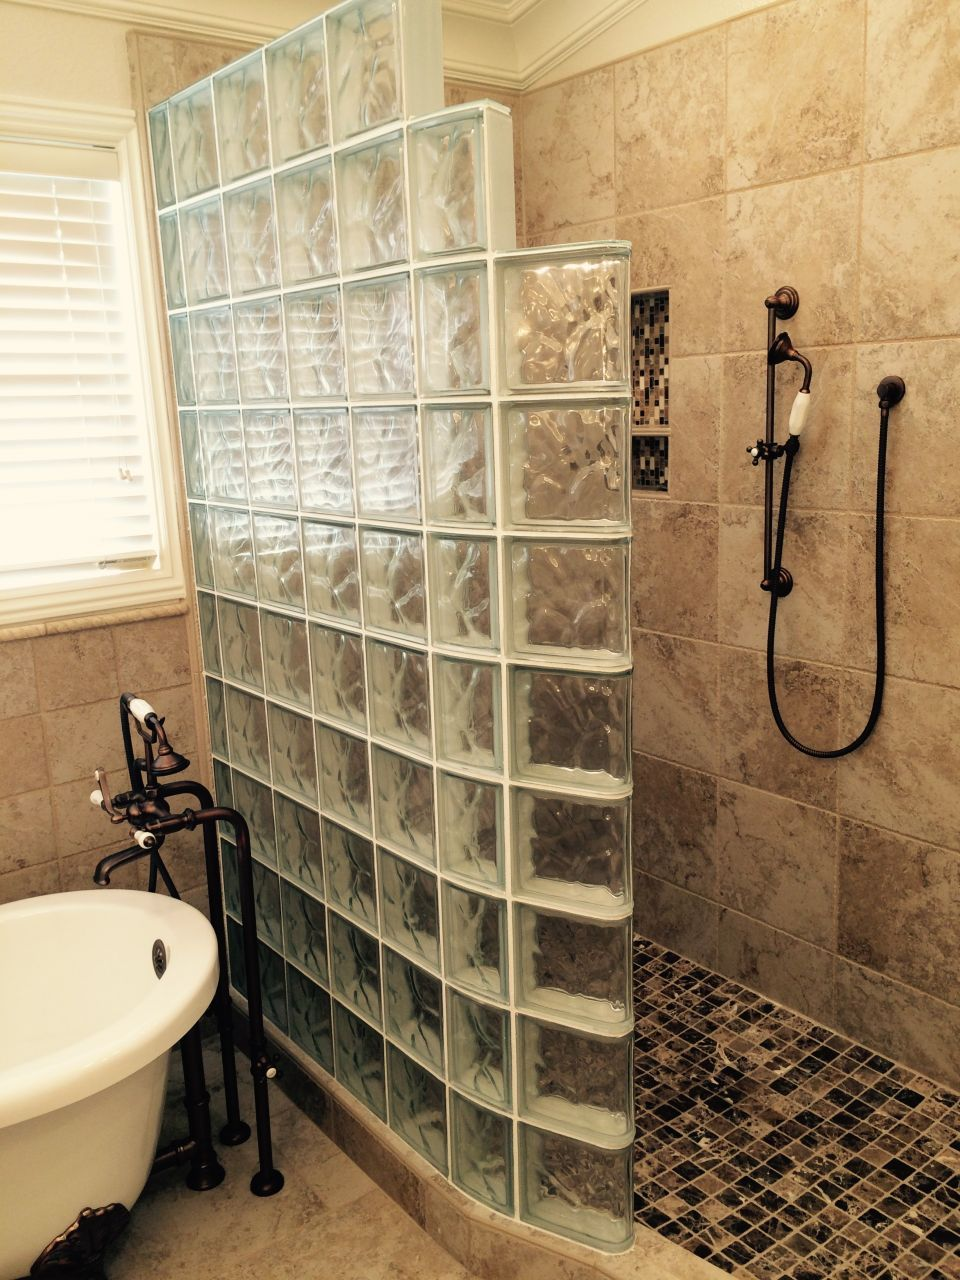 5 Out Of The Box Remodeling Tips For A Master Bathroom Curved Glass Freestanding Tub And